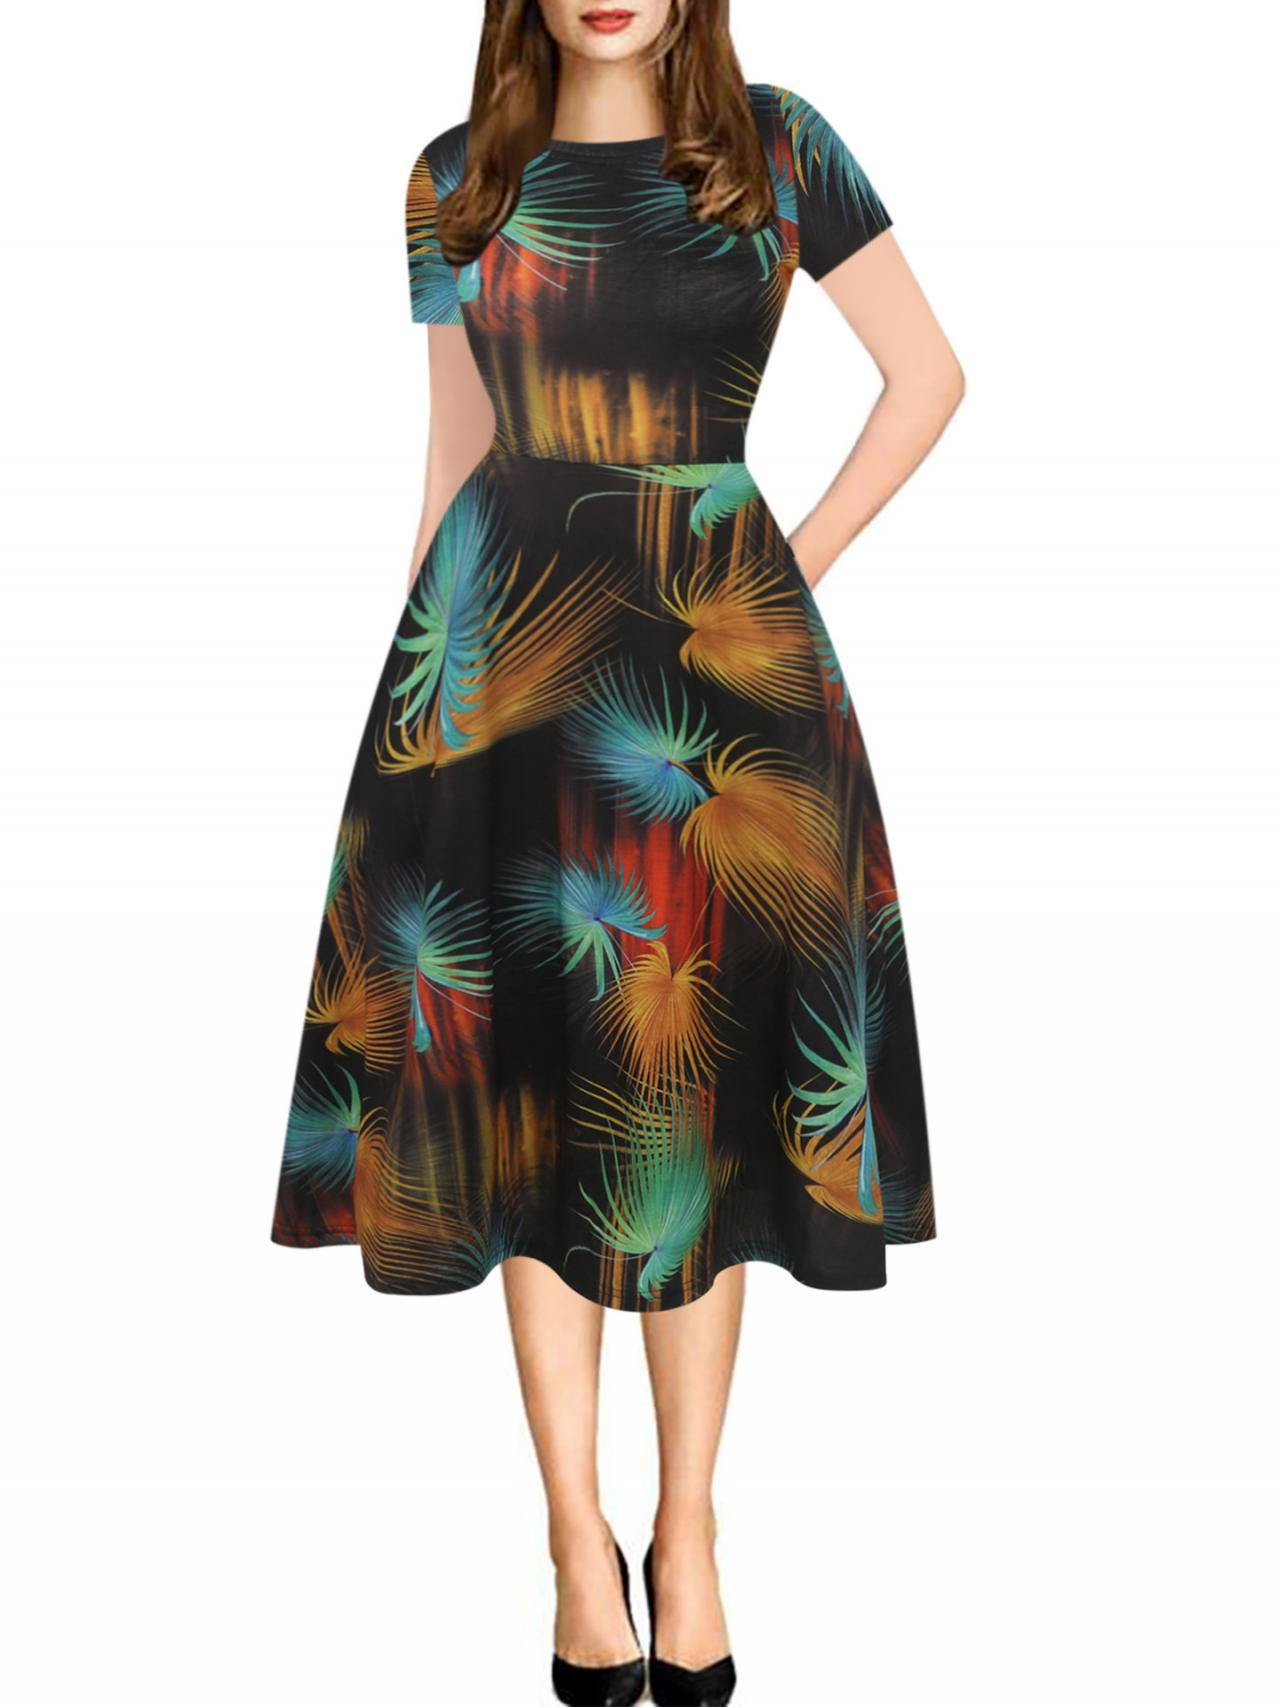 Women Floral Printed Slim Dress Vintage Short Sleeve Knee Length A-line Rockabilly Casual Party Dress 11#